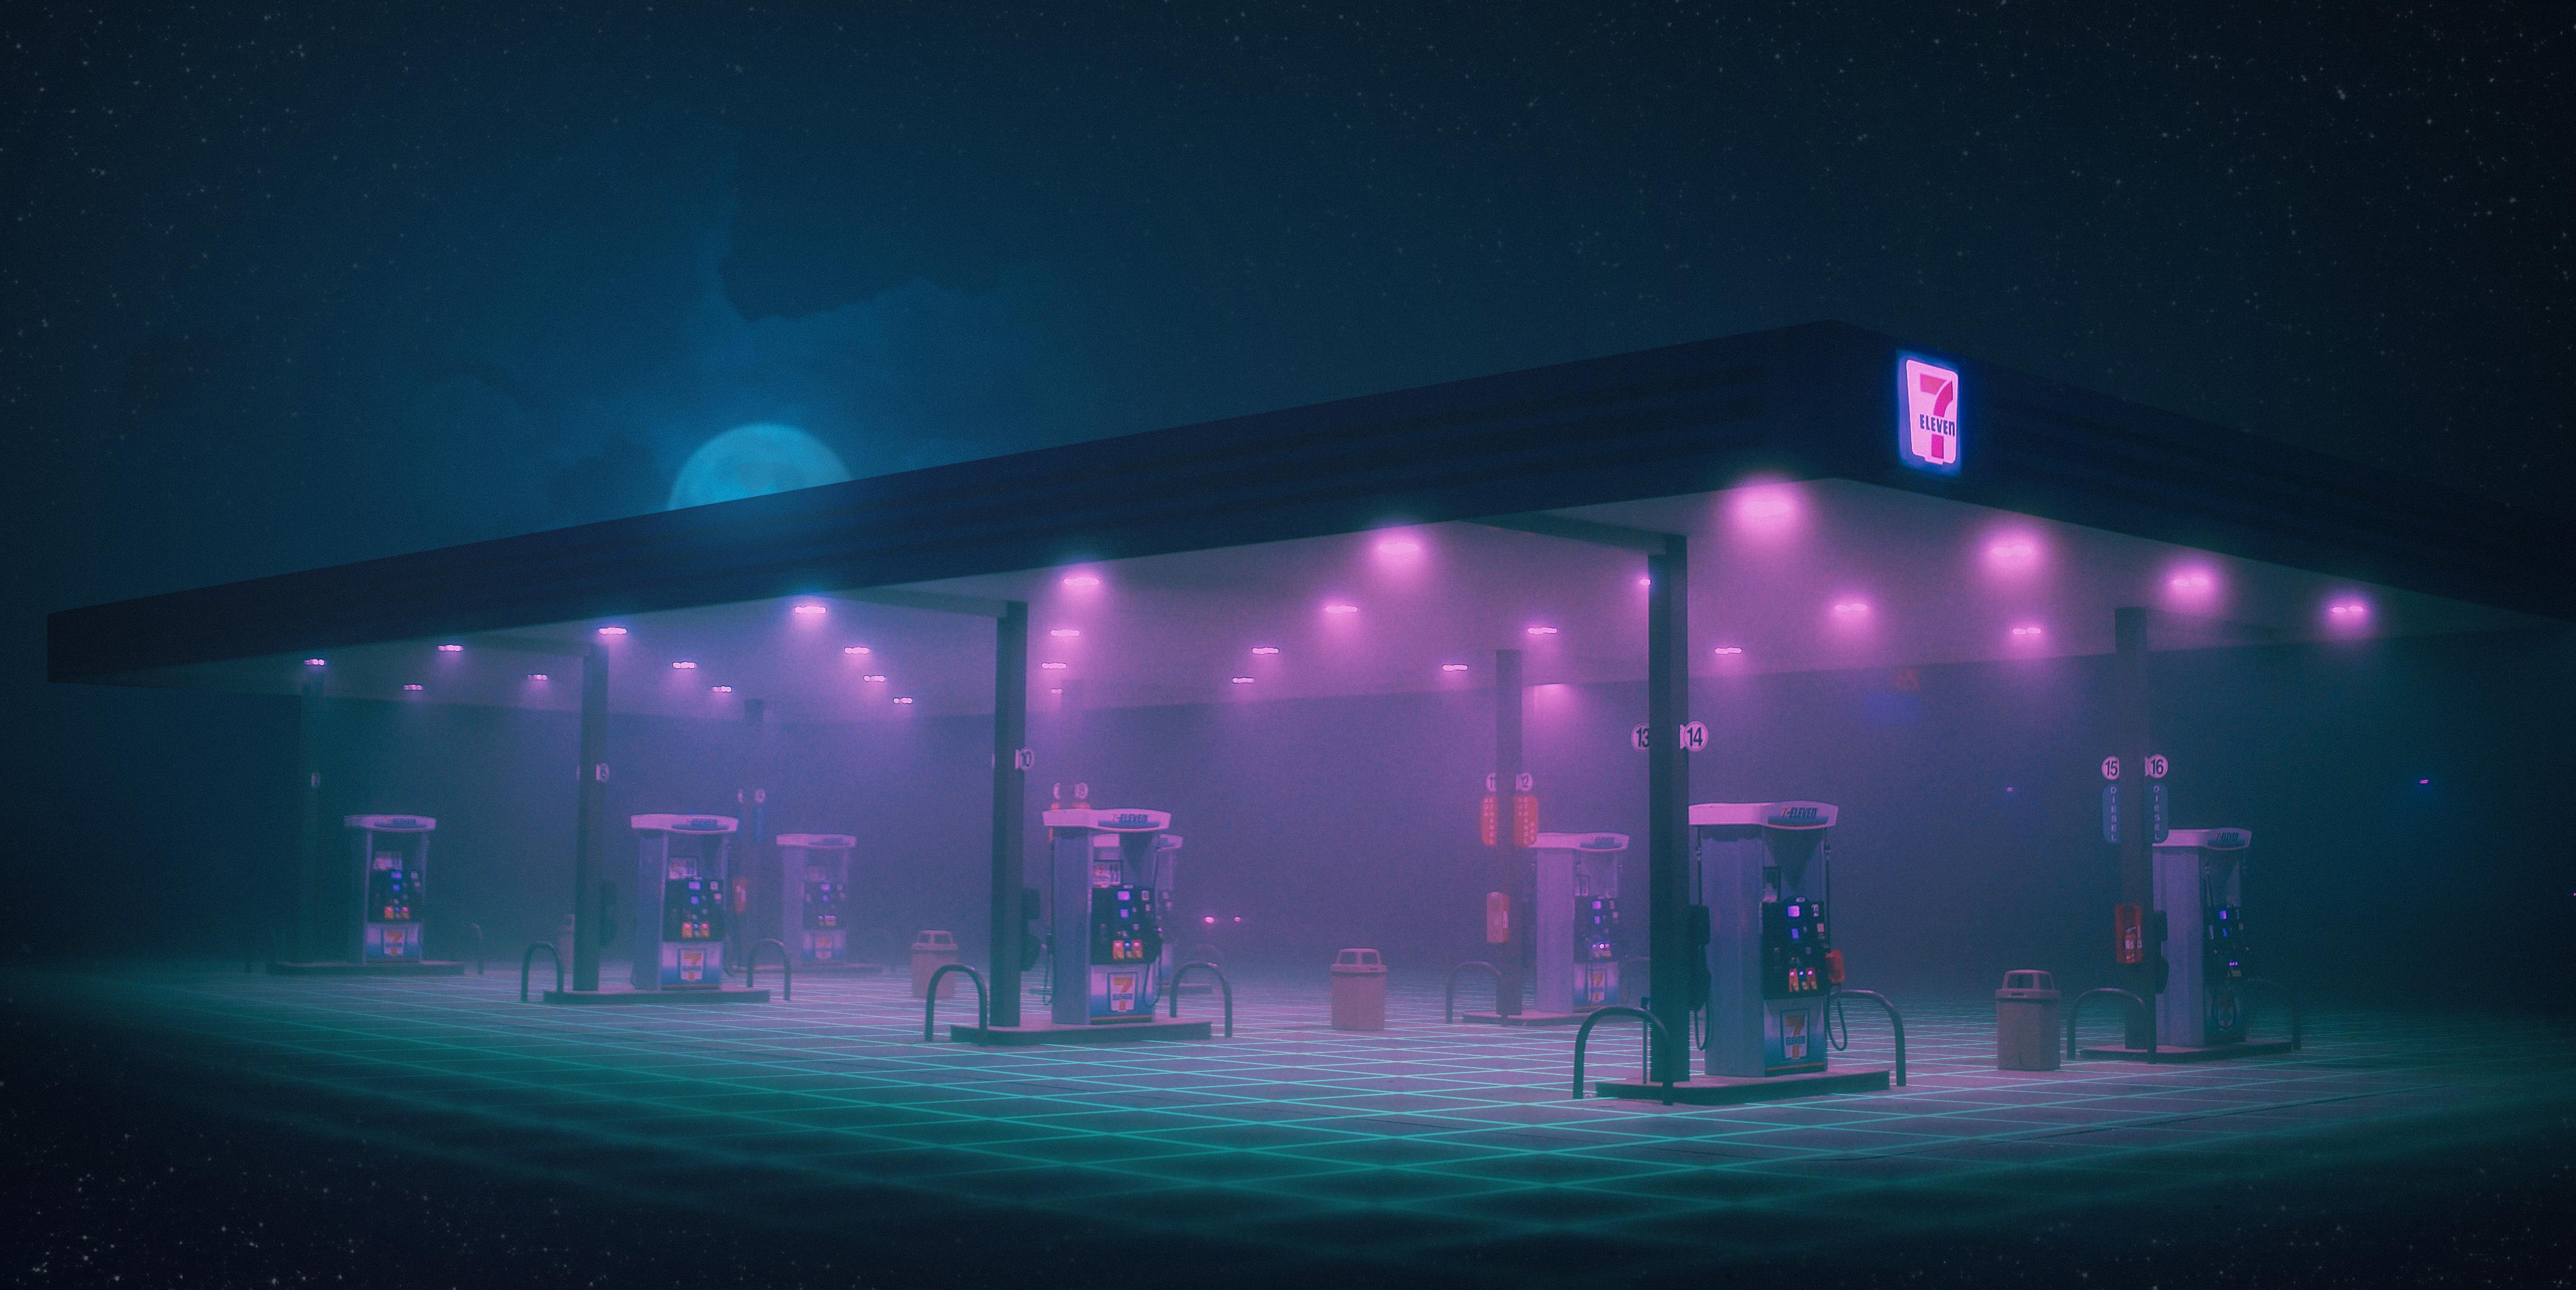 Gas Station Minimalist Hd Artist 4k Wallpapers Images